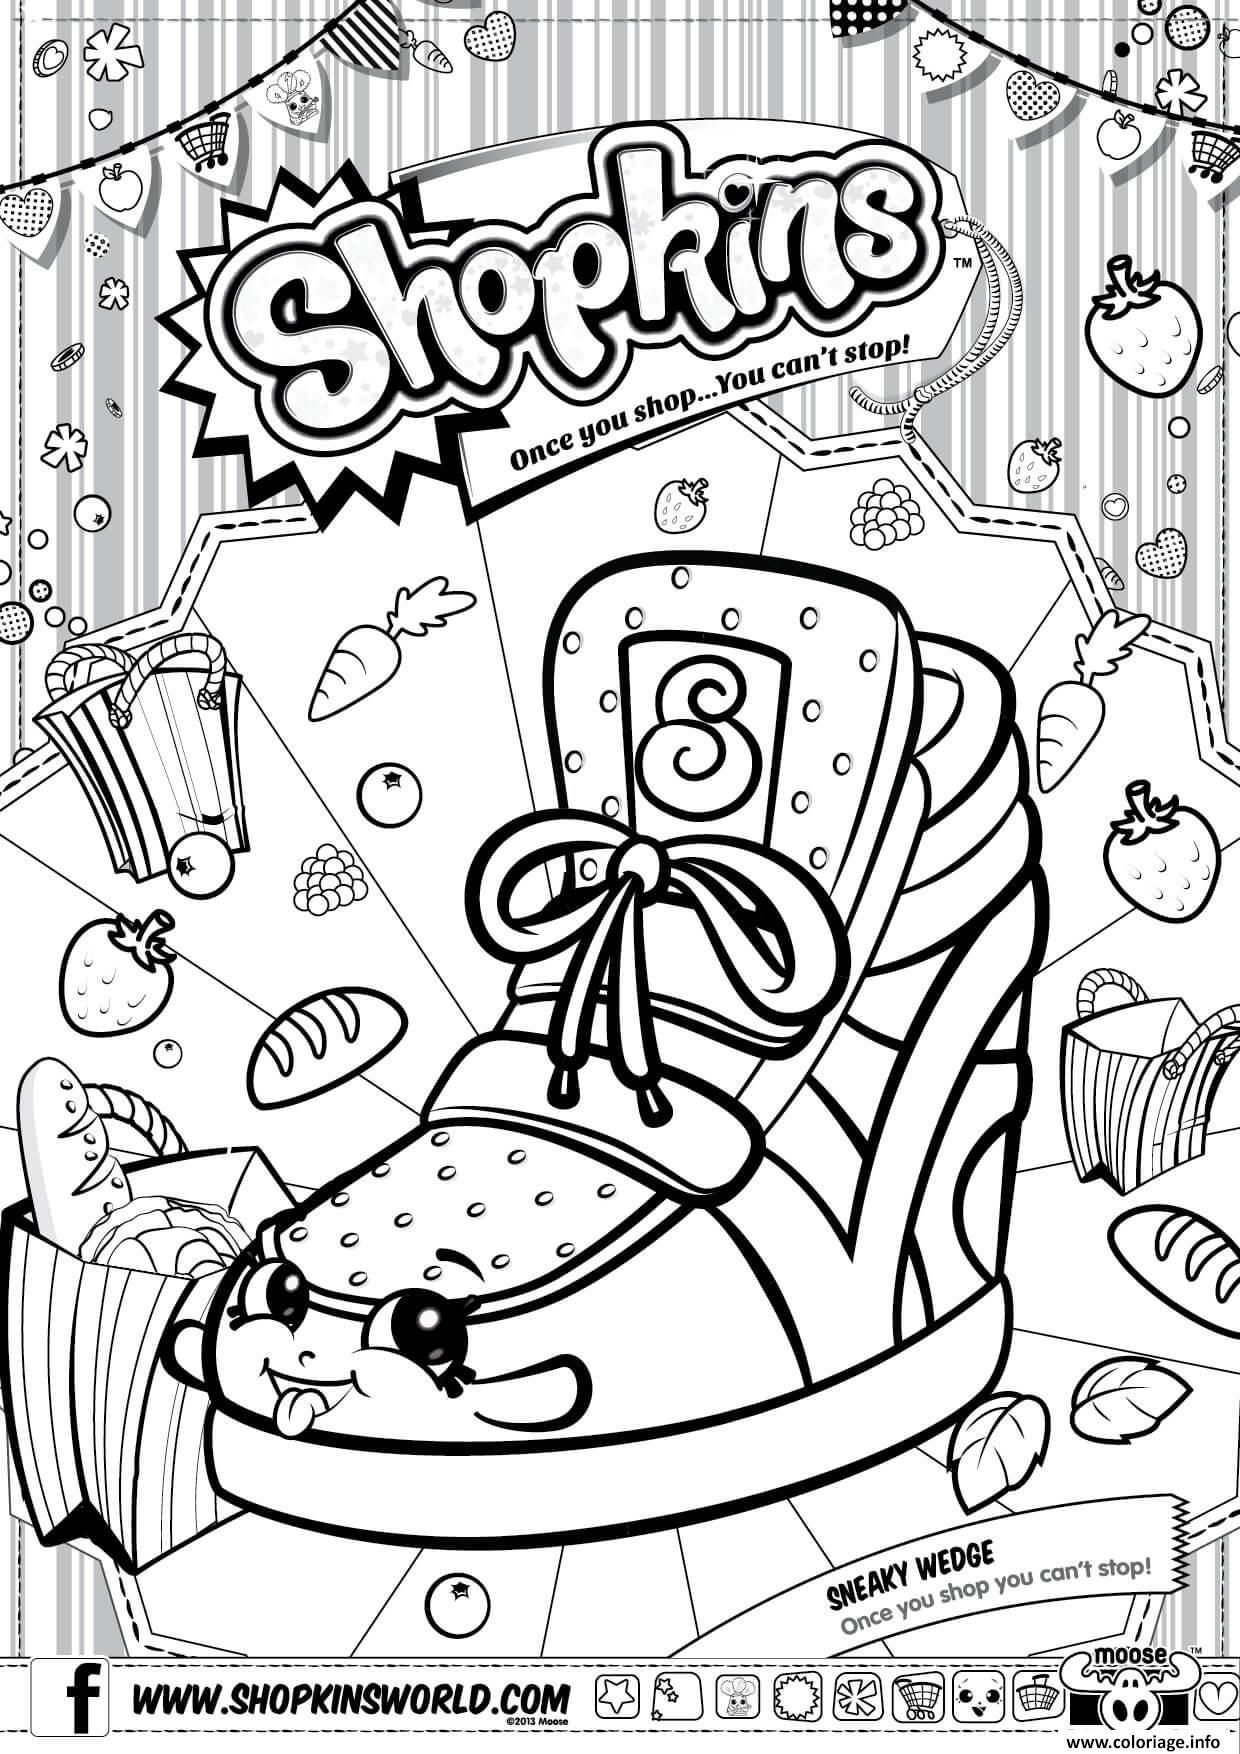 Pin By Wendy Conley On Shopkins Coloring Pages Pinterest